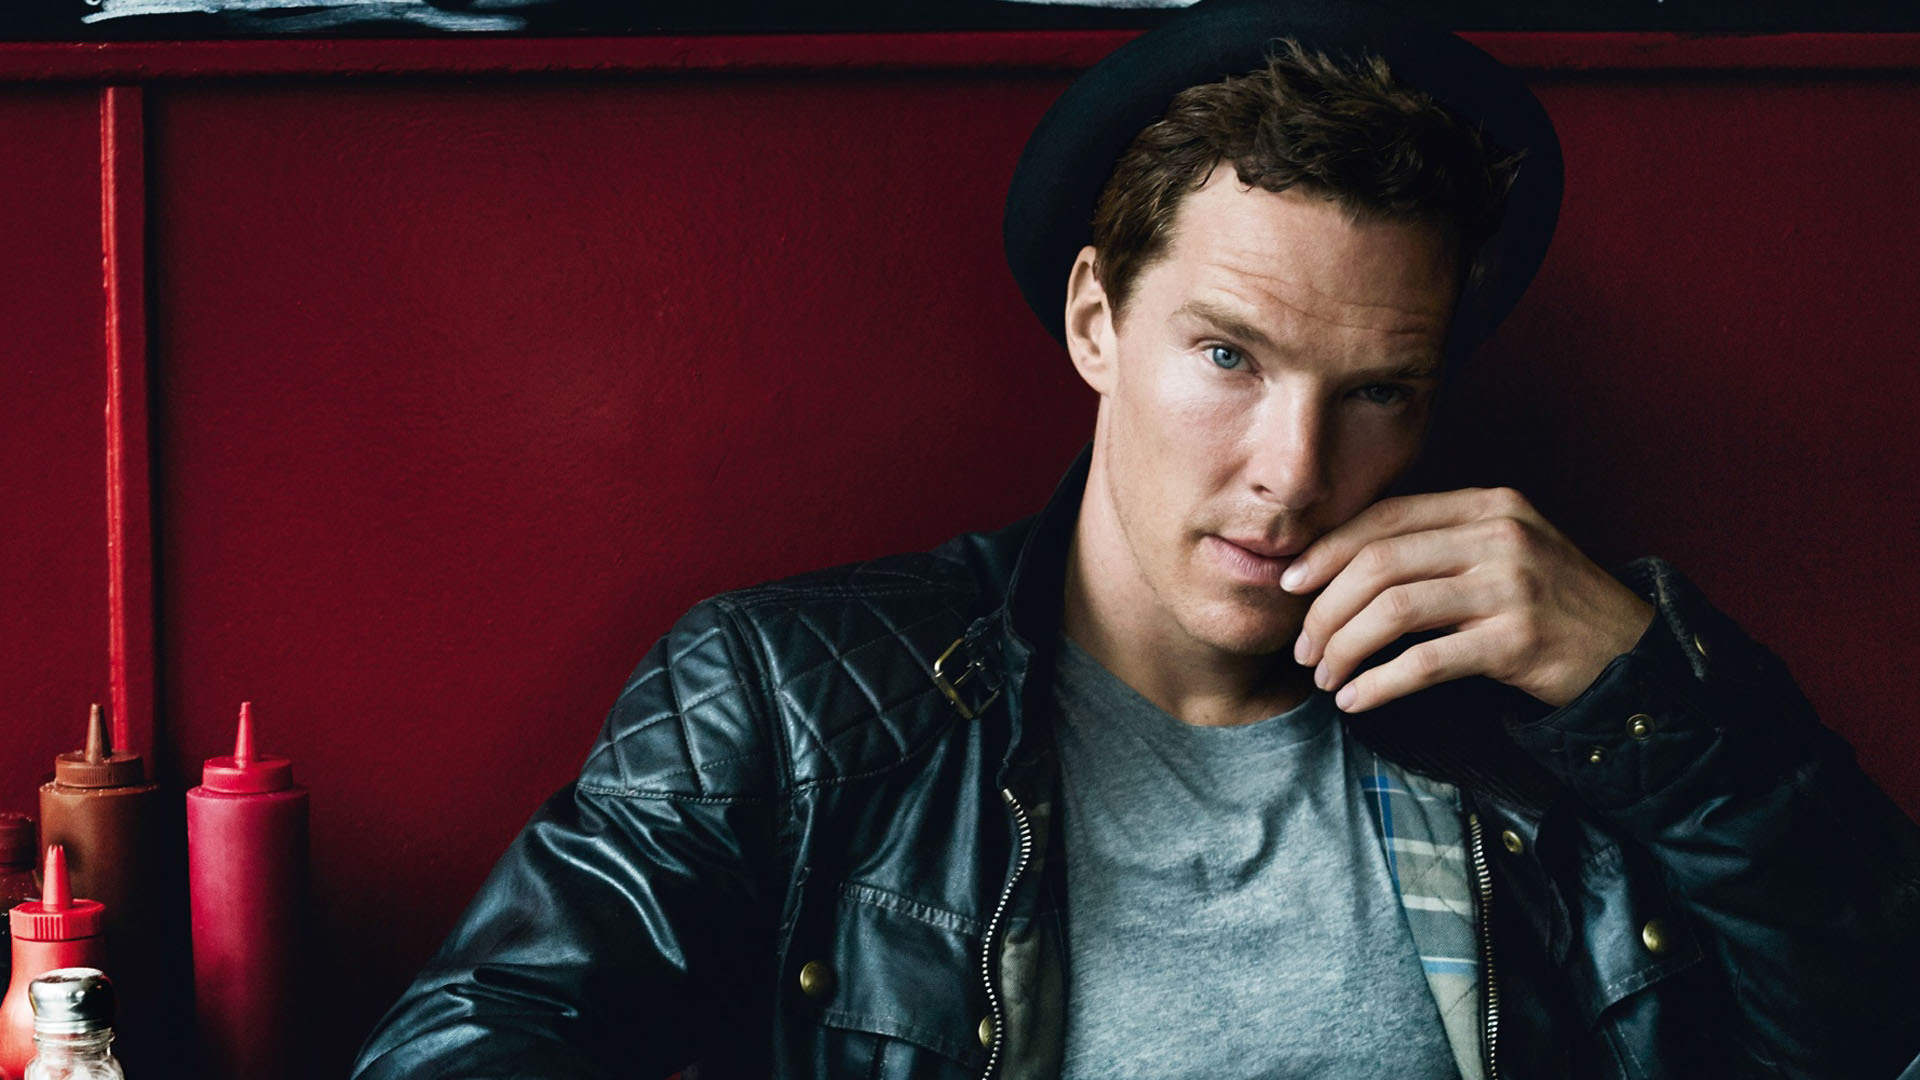 Benedict Cumberbatch Wallpaper Hd: Benedict Cumberbatch Wallpapers Images Photos Pictures